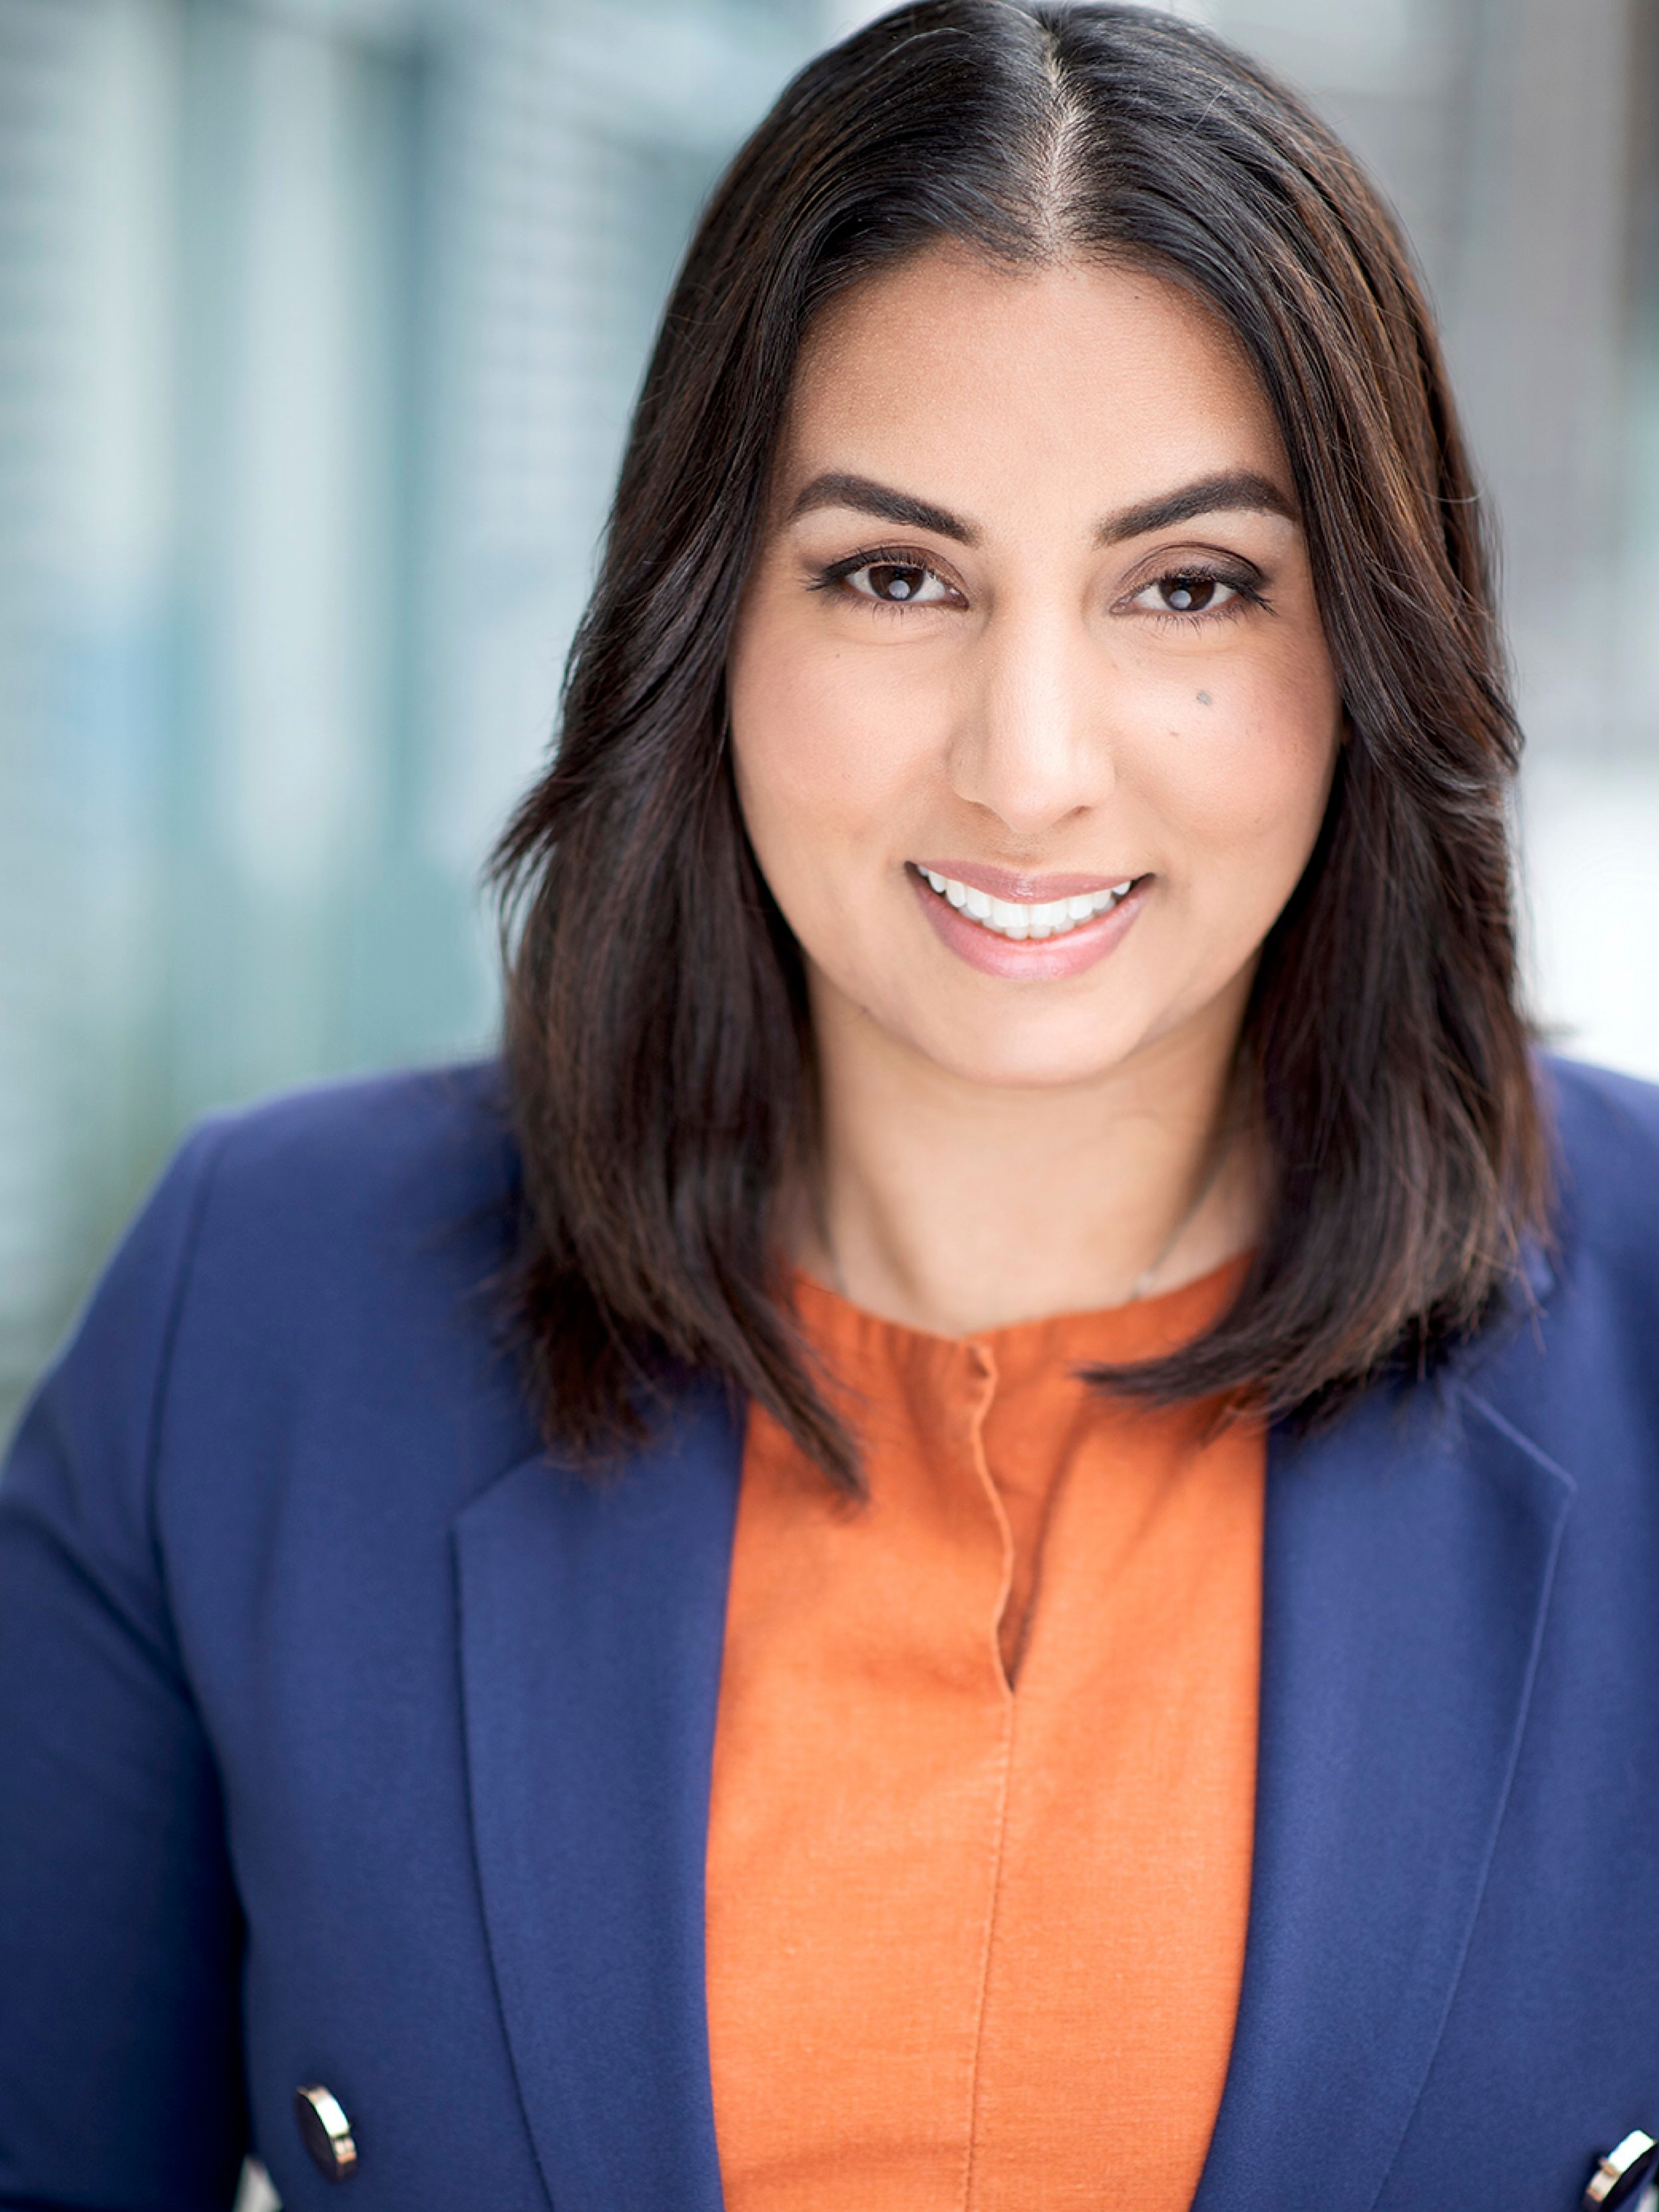 NIKI SHARMA - Lawyer and Director, Vancity Credit UnionNiki Sharma is a lawyer, a Director of Vancity Credit Union and former Chair of the Vancouver Park Board. She is currently on the leadership team to implement an universal childcare plan for B.C. She is deeply committed to reconciliation, diversity and inclusion, gender equity and strengthening local communities. Niki is a frequent public speaker and recognized writer on diversity and inclusion.